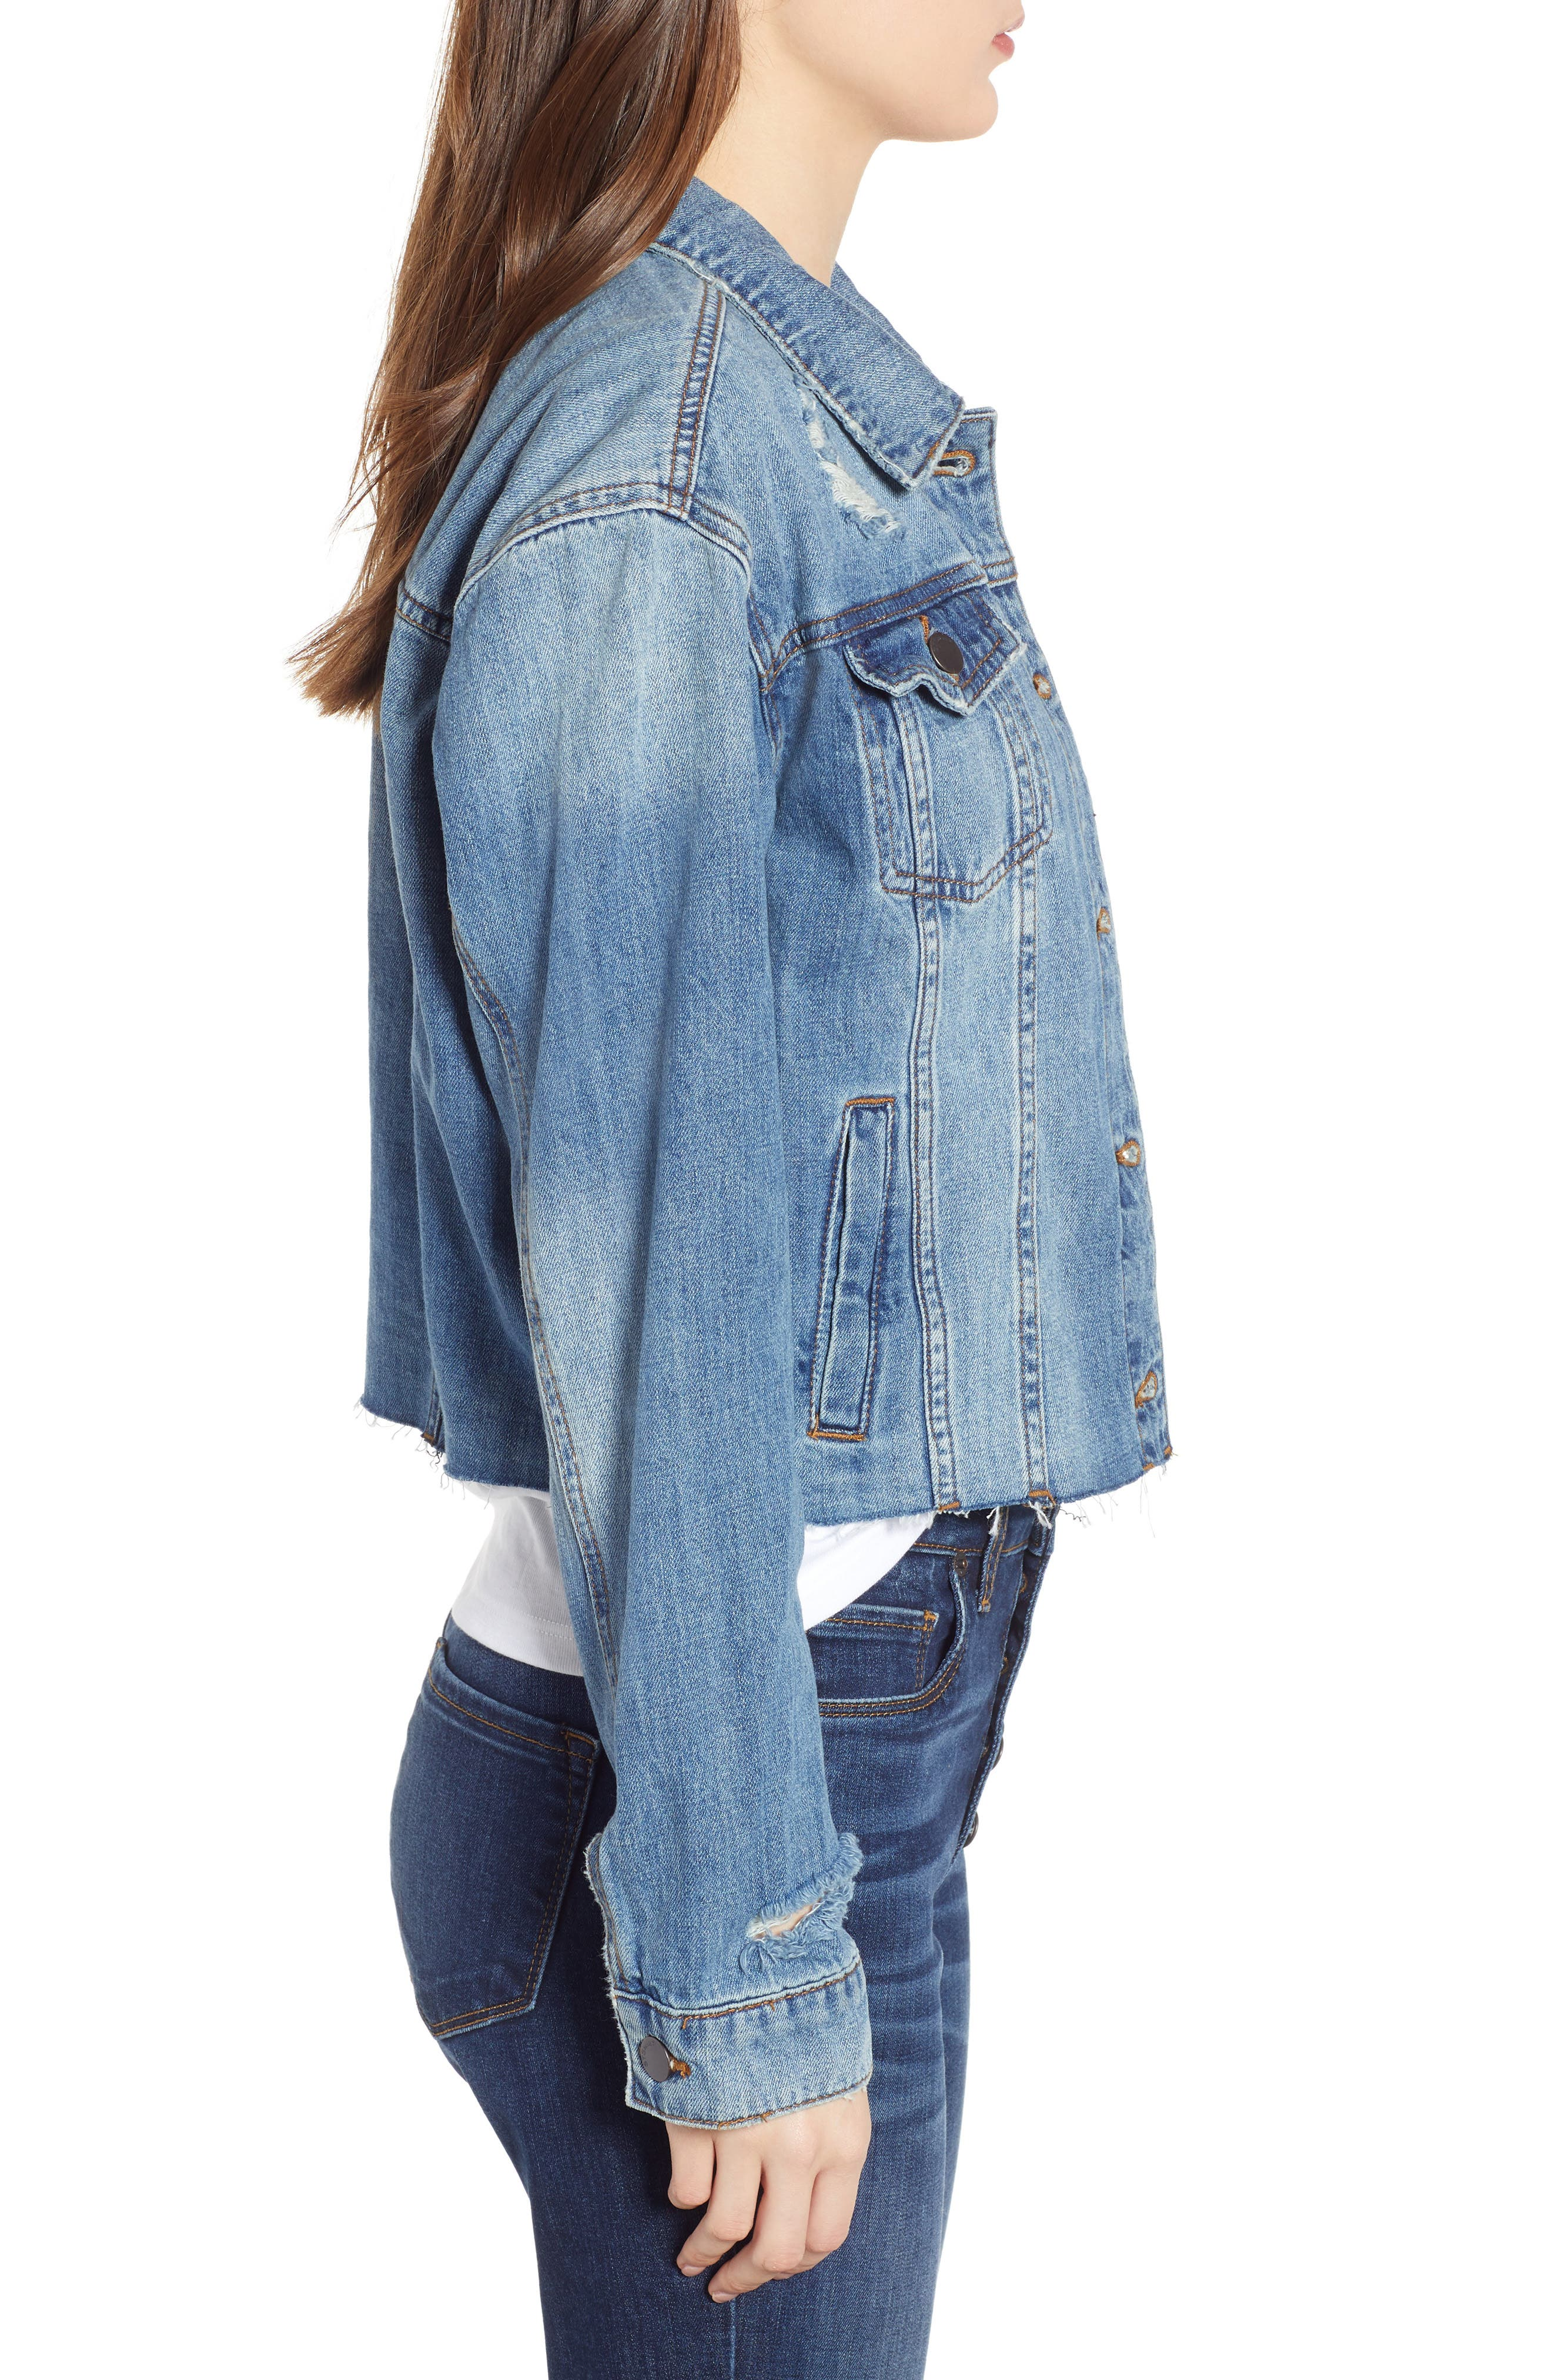 STS BLUE,                             Boyfriend Crop Denim Jacket,                             Alternate thumbnail 3, color,                             400